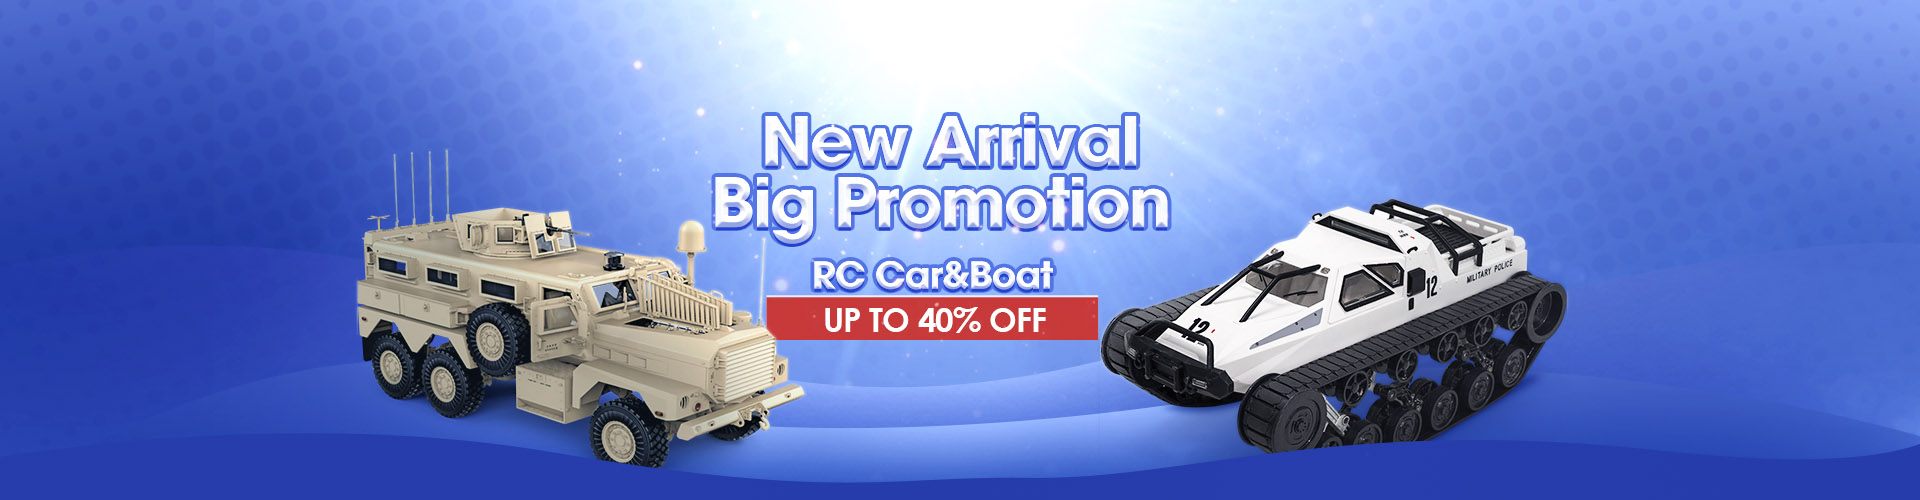 RC Car Boat New Arrival Promtion 10% OFF